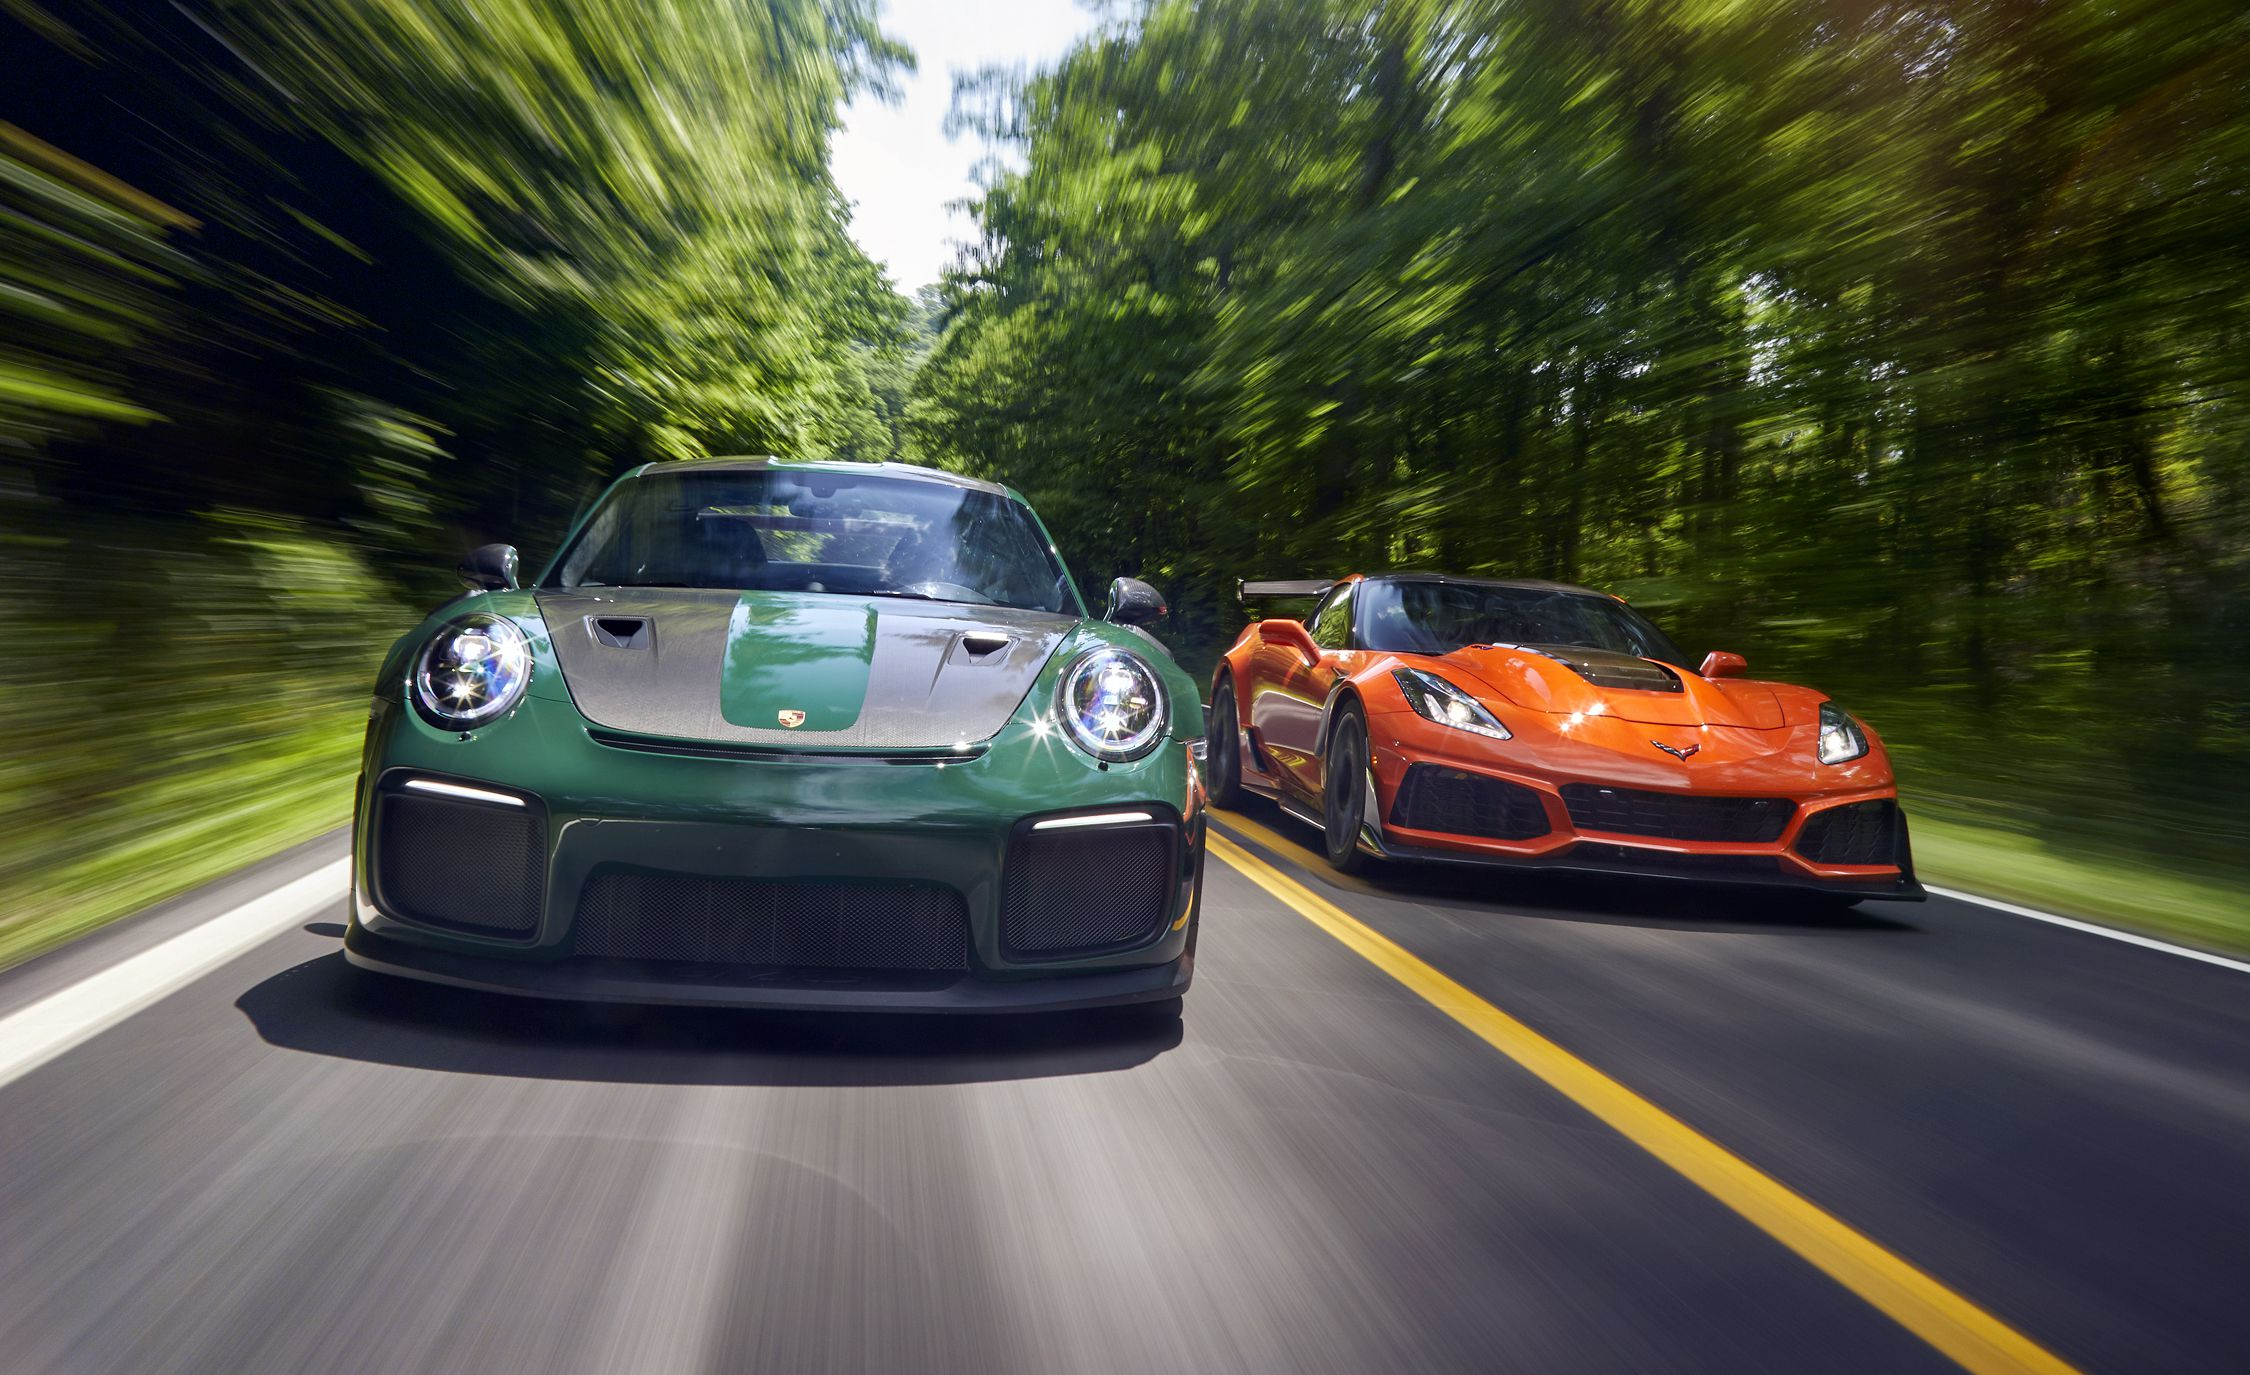 2018 Porsche 911 Gt2 Rs Wallpapers 28 Hd Images Newcarcars